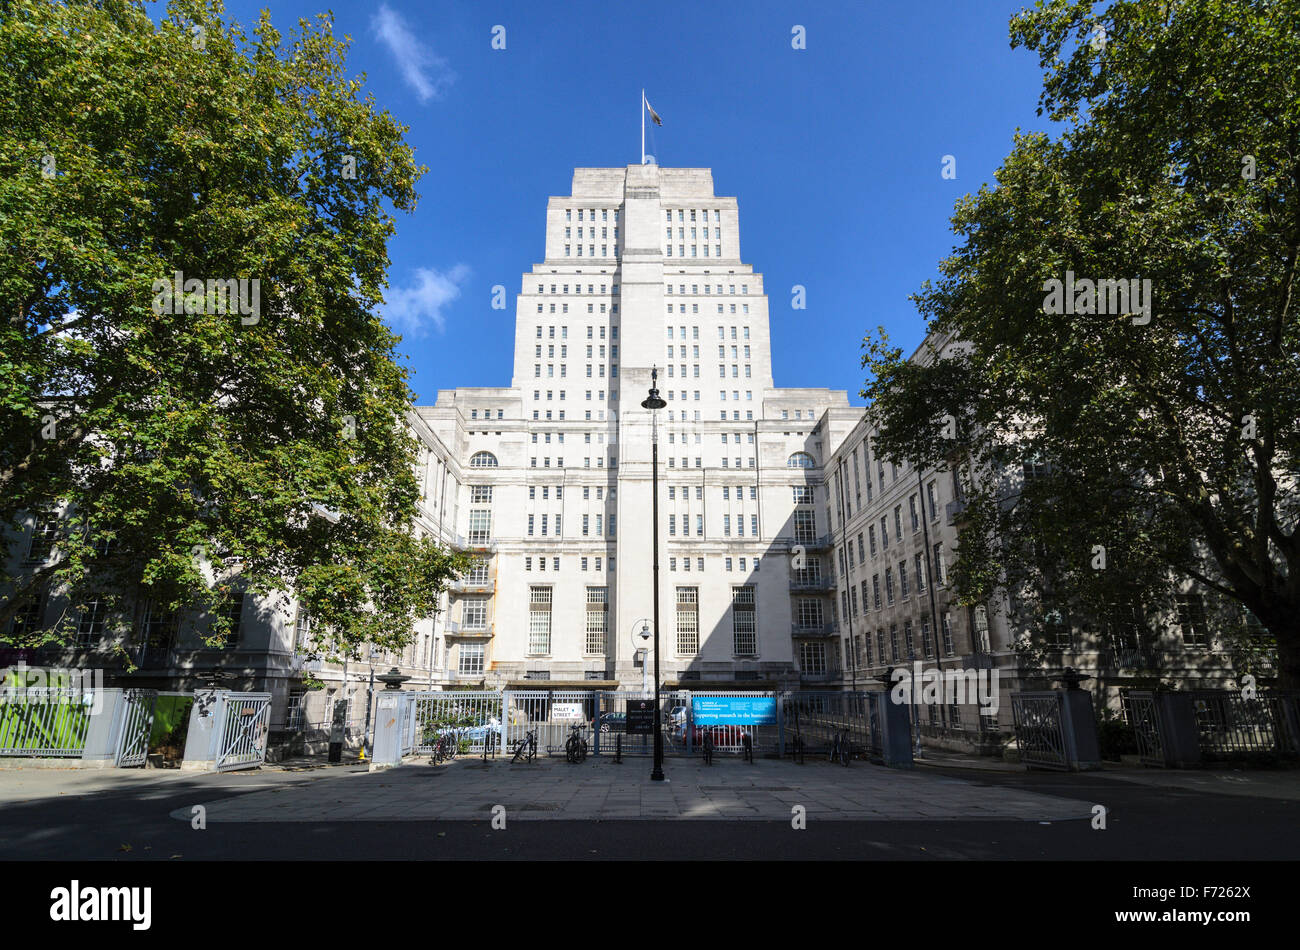 Senate House is the central building for the University of London, Bloomsbury, London, England, United Kingdom. - Stock Image